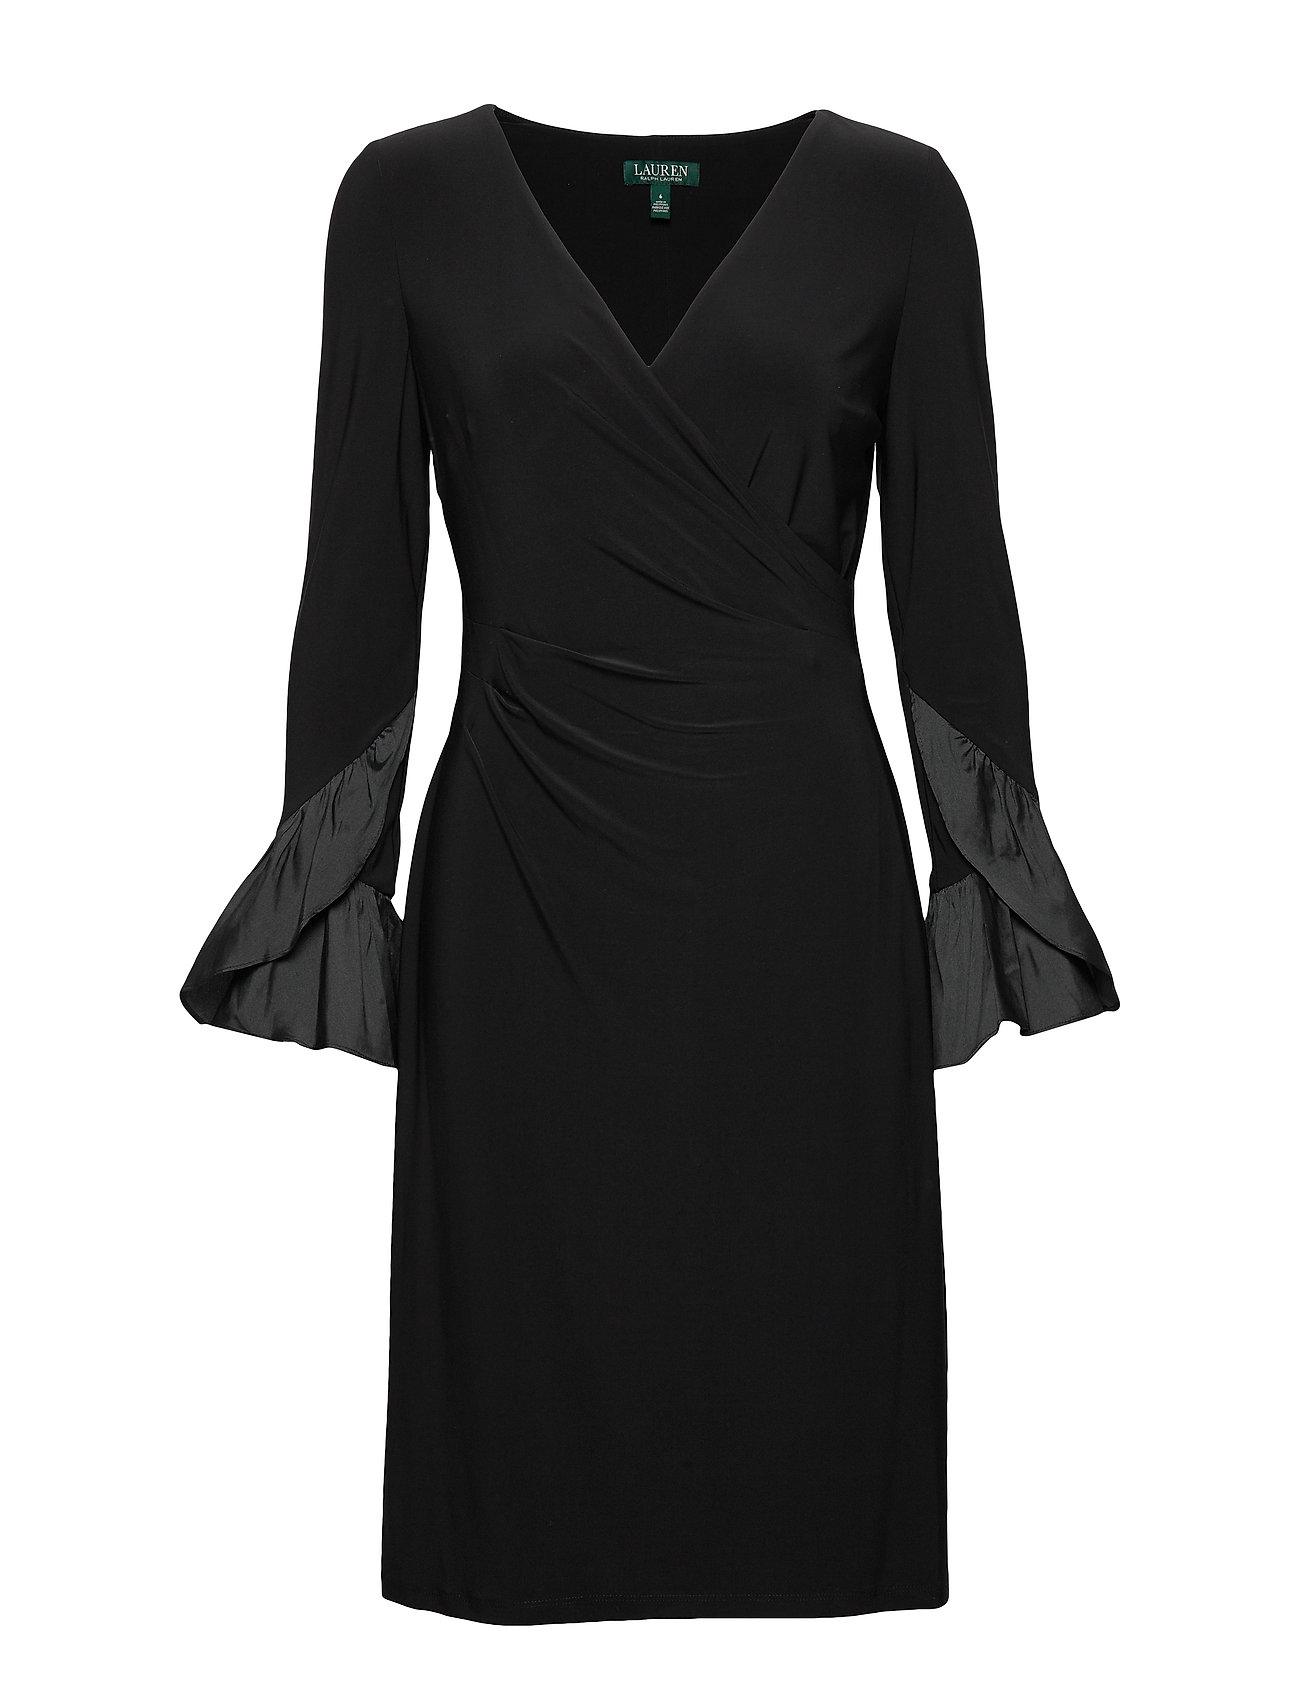 Lauren Ralph Lauren CLASSIC MJ-DRESS W/ COMBO - BLACK